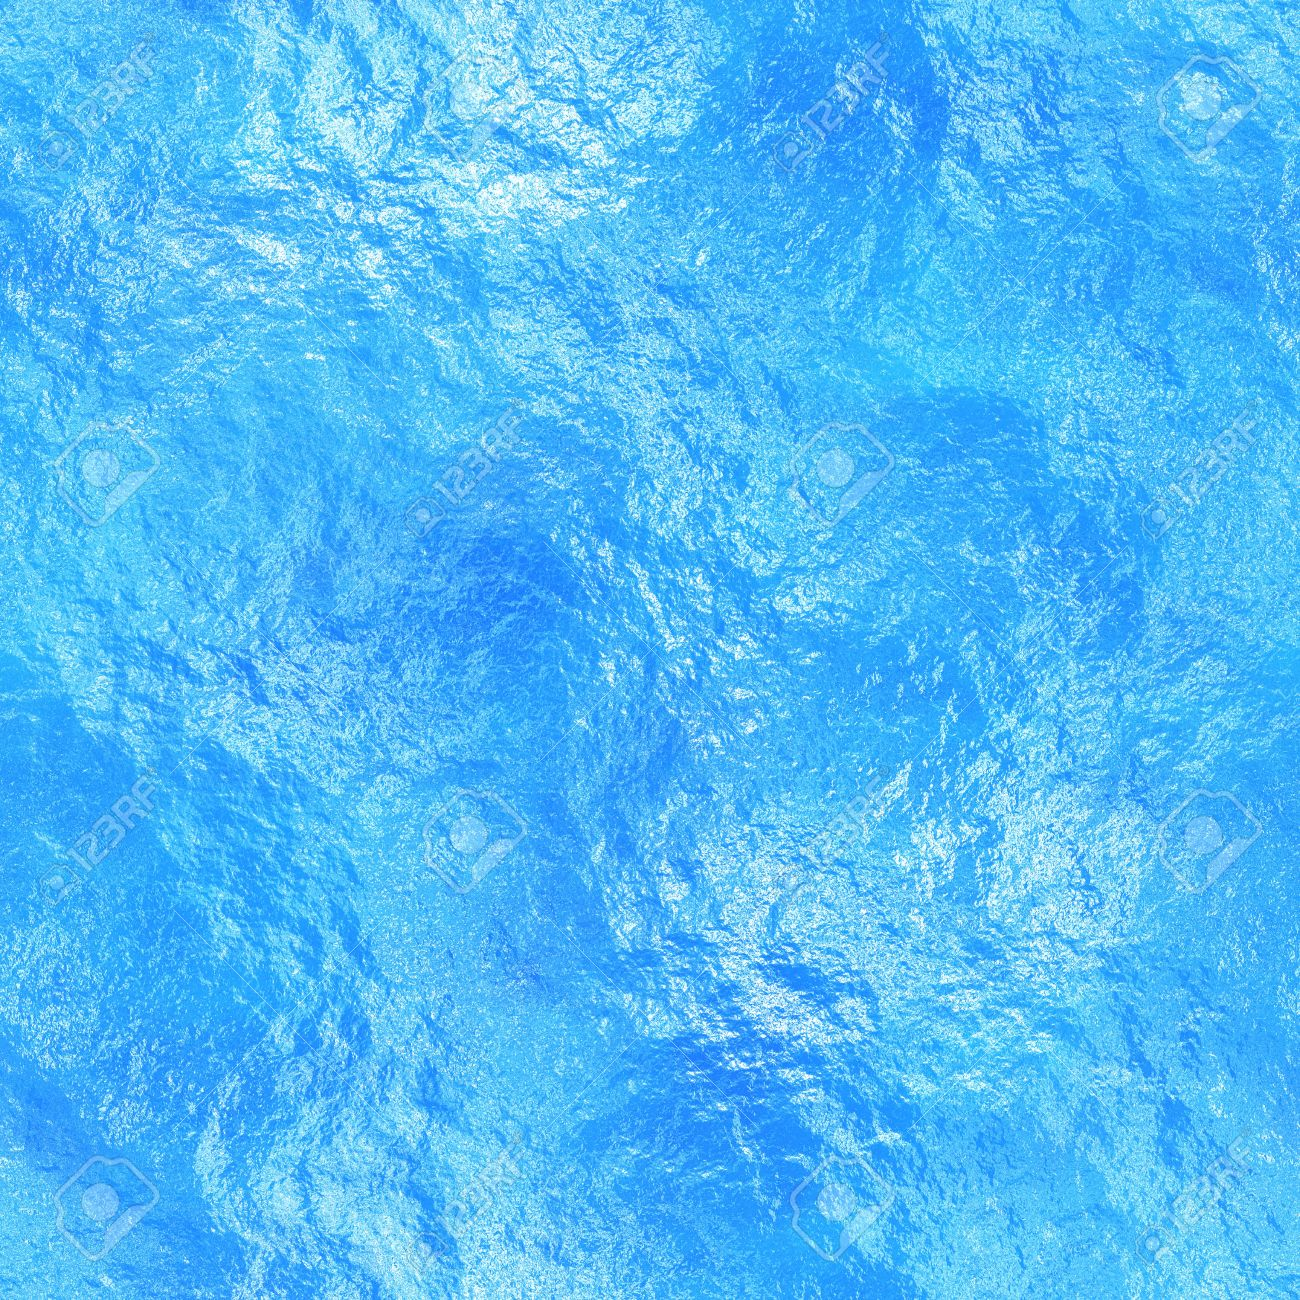 Seamless Water Texture Computer Graphic Big Collection Stock Photo